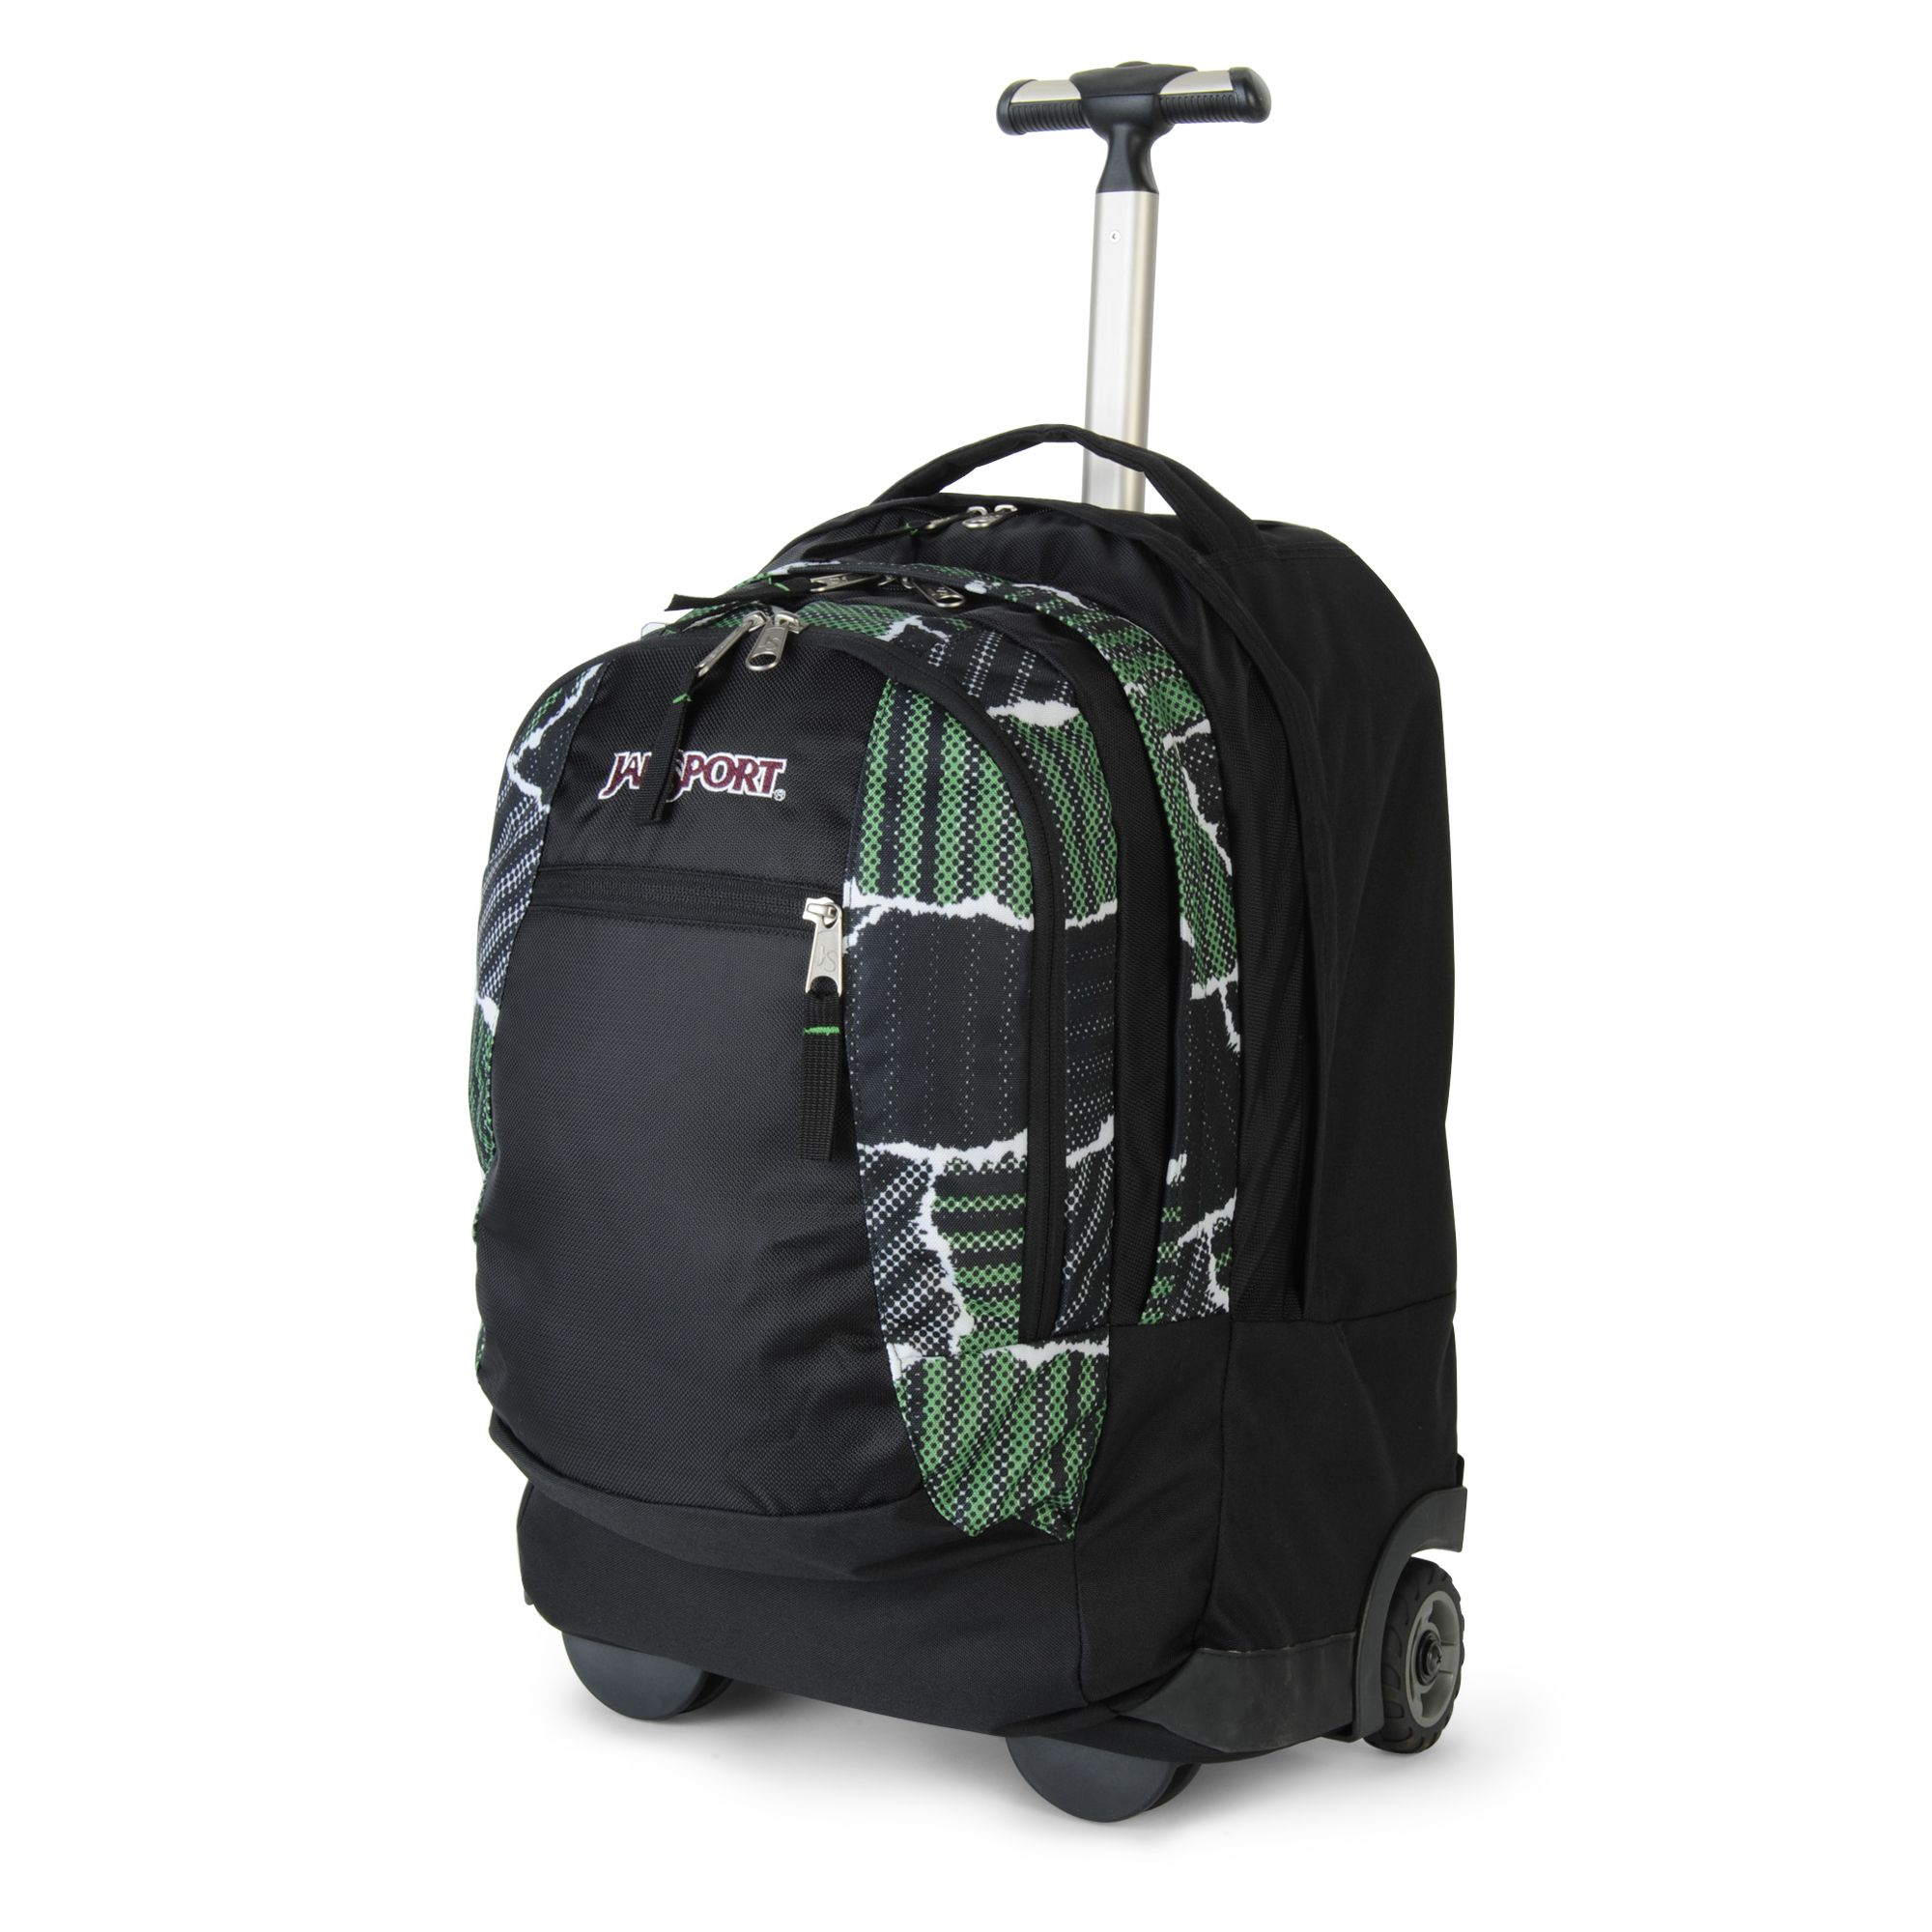 Victorinox Rolling Backpack - Crazy Backpacks